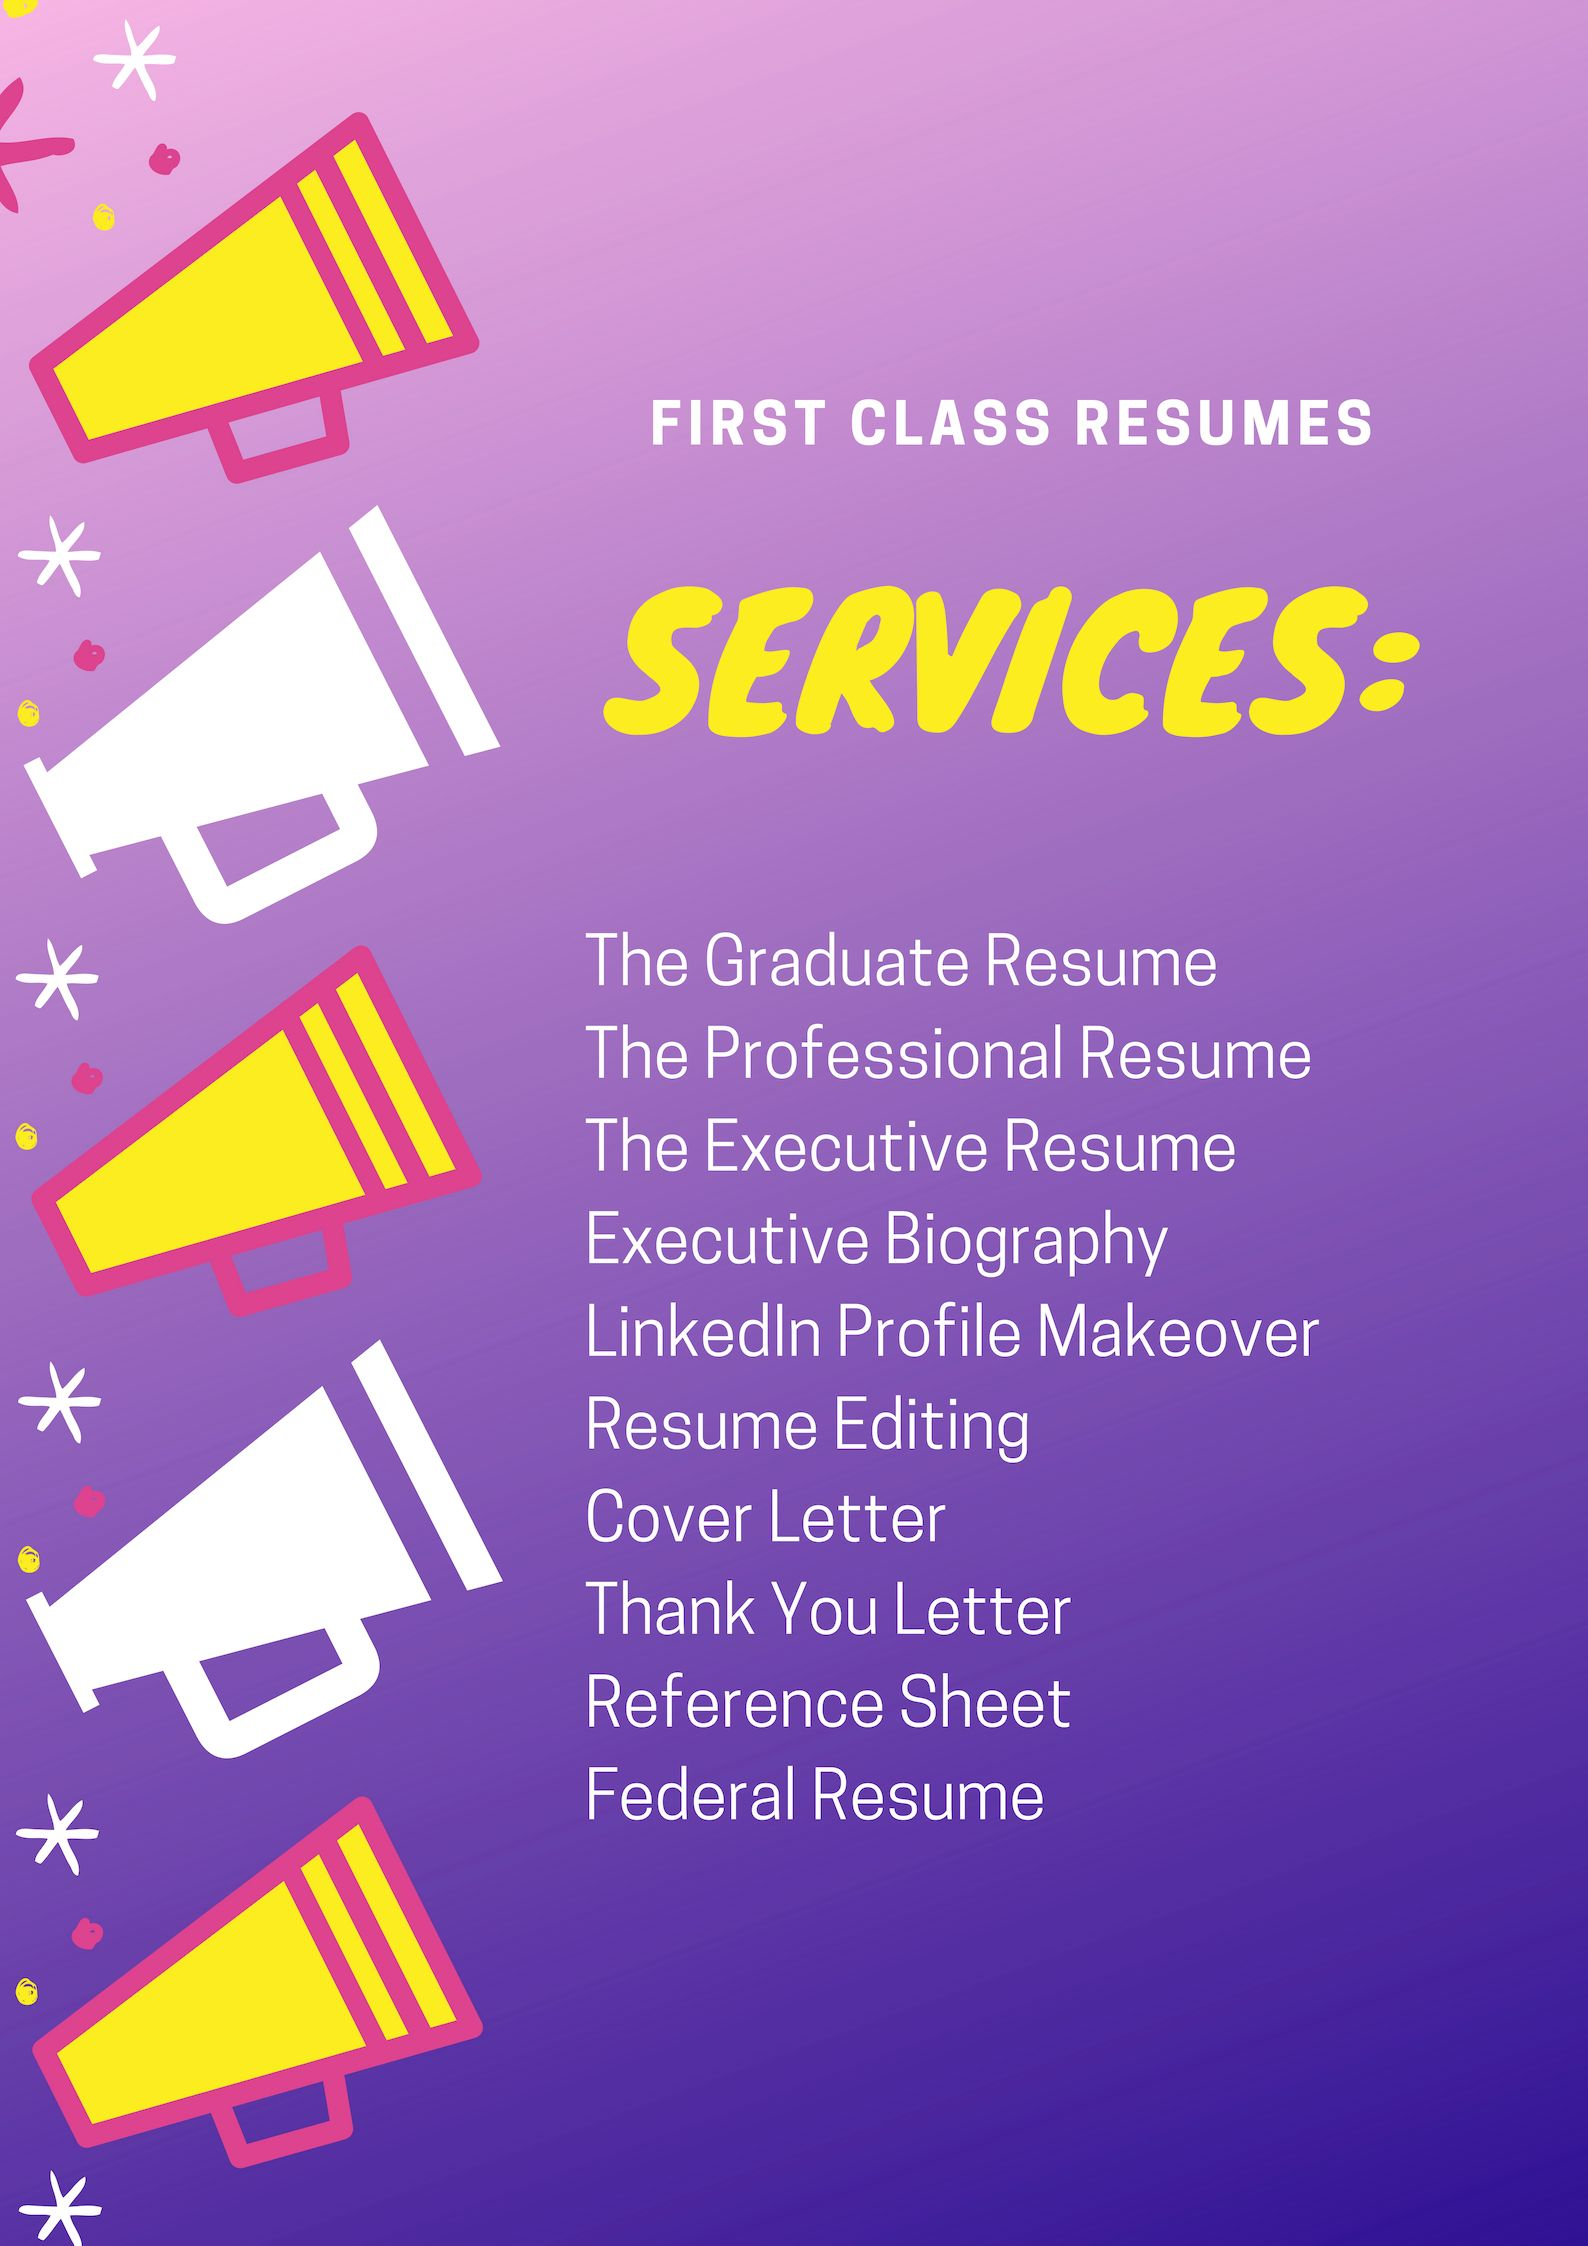 First class resumes career services mission is to